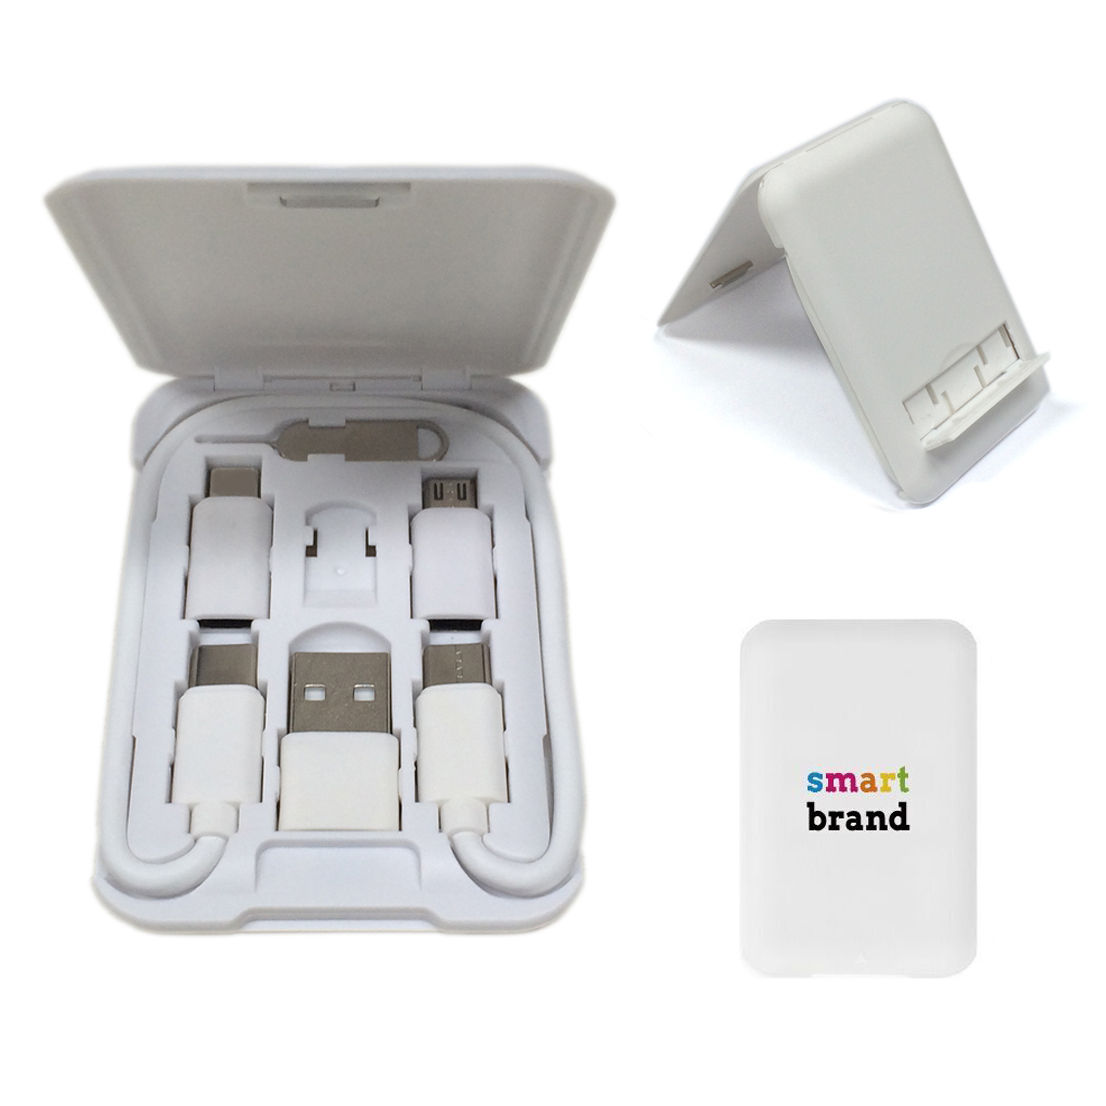 2020 New Travel Gift Sets Credit Card Phone USB Charging Cord Phone Stand 5in1 Adapter Cable Box Mobile Phone Charging Kits